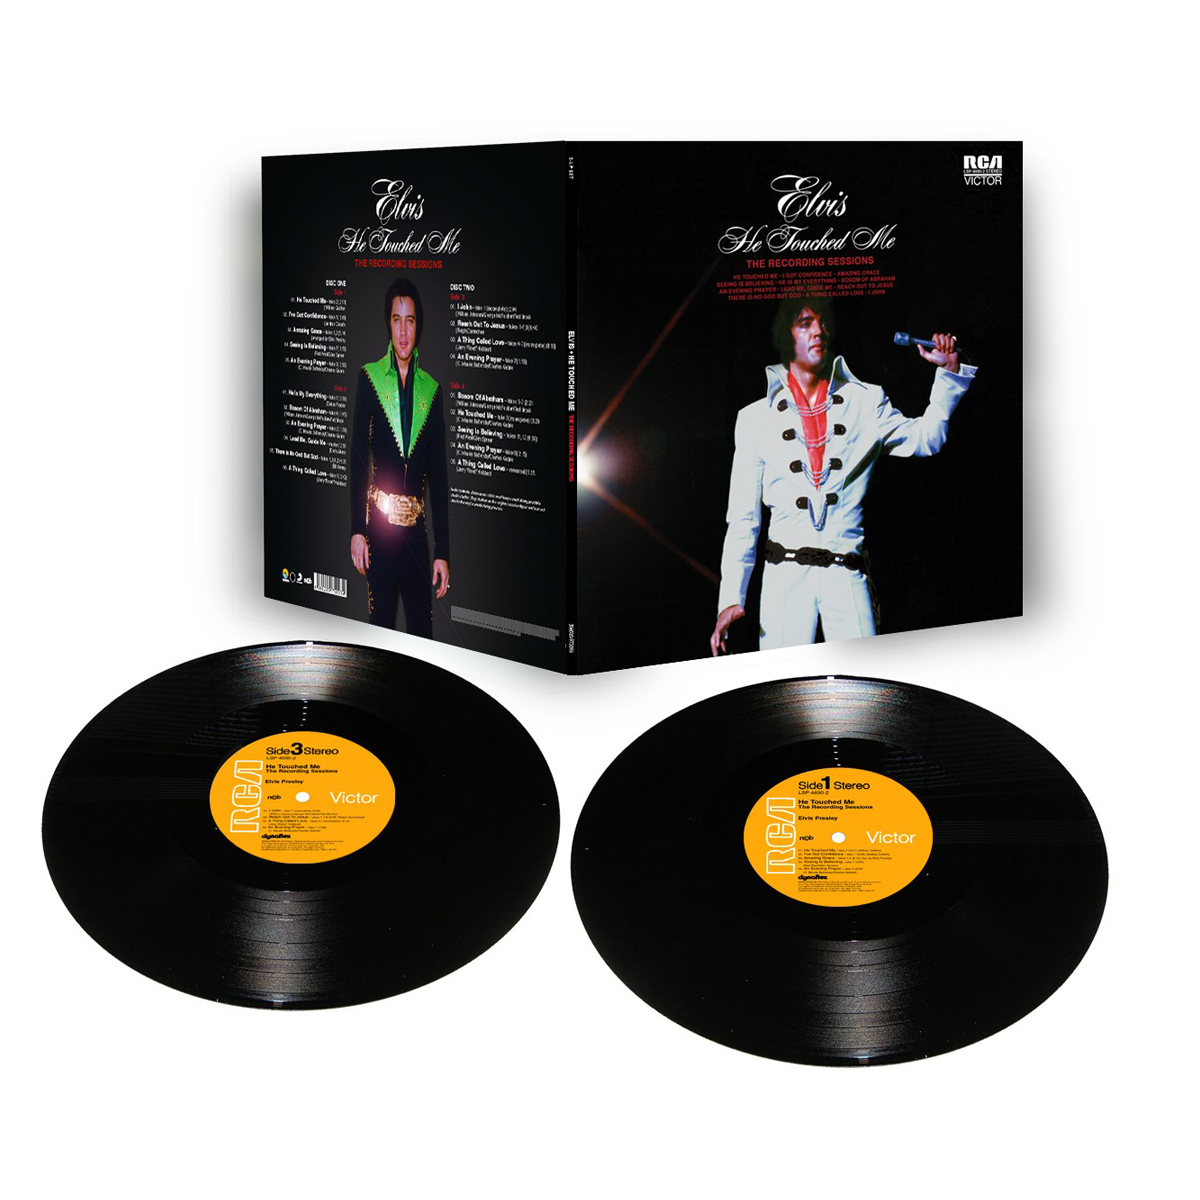 He Touched Me FTD 2-Disc Vinyl Set